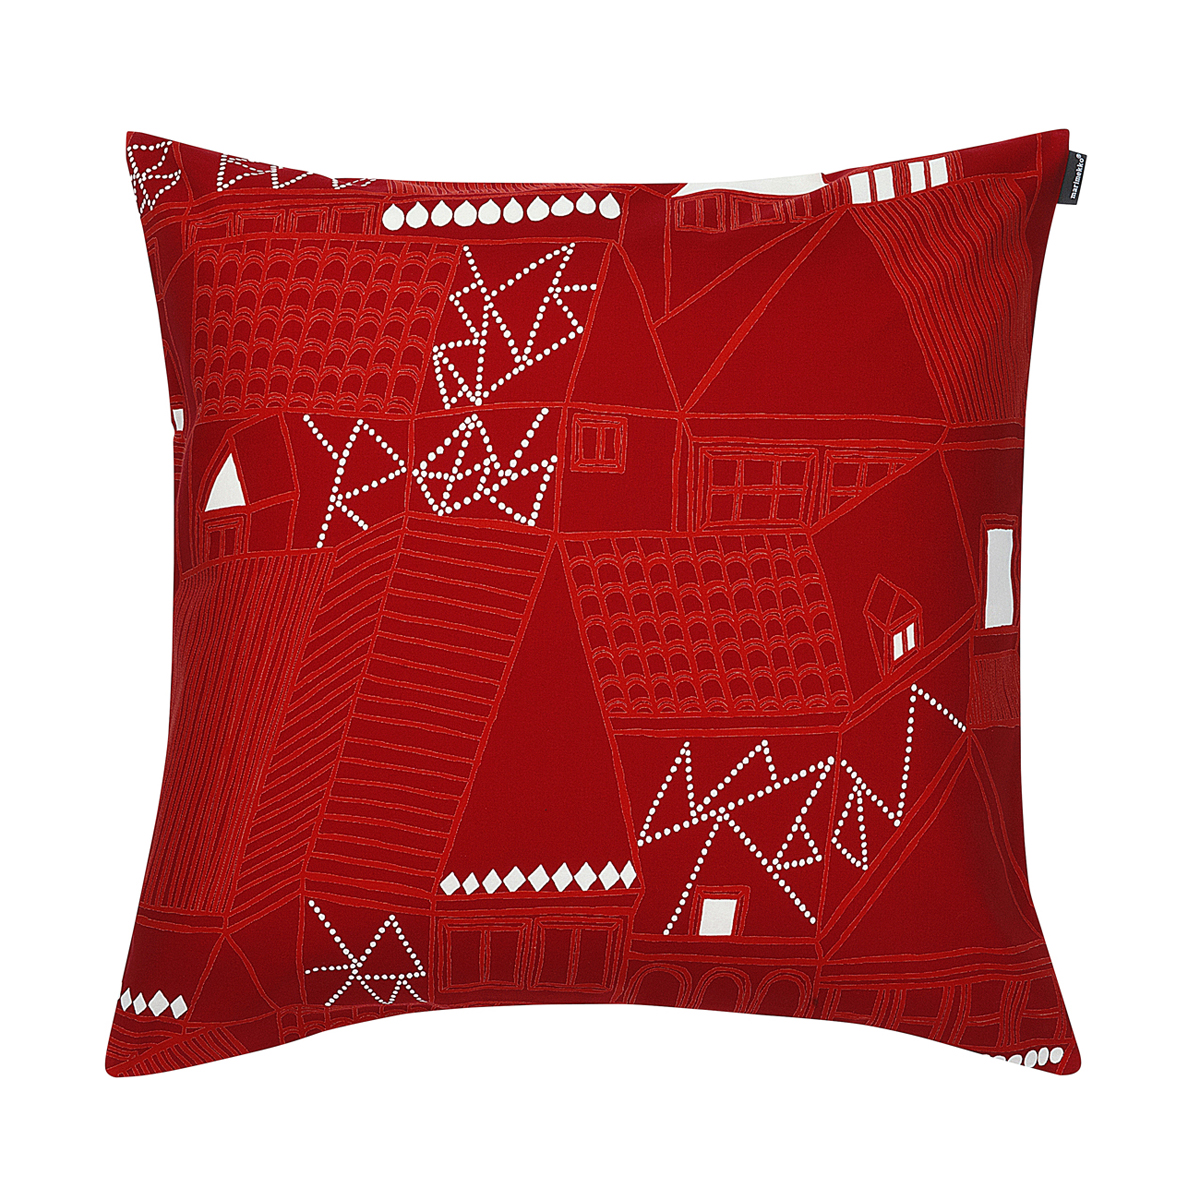 Red Throw Pillows For Bed : Marimekko Kujilla Red Throw Pillow - Marimekko Bed & Bath Sale